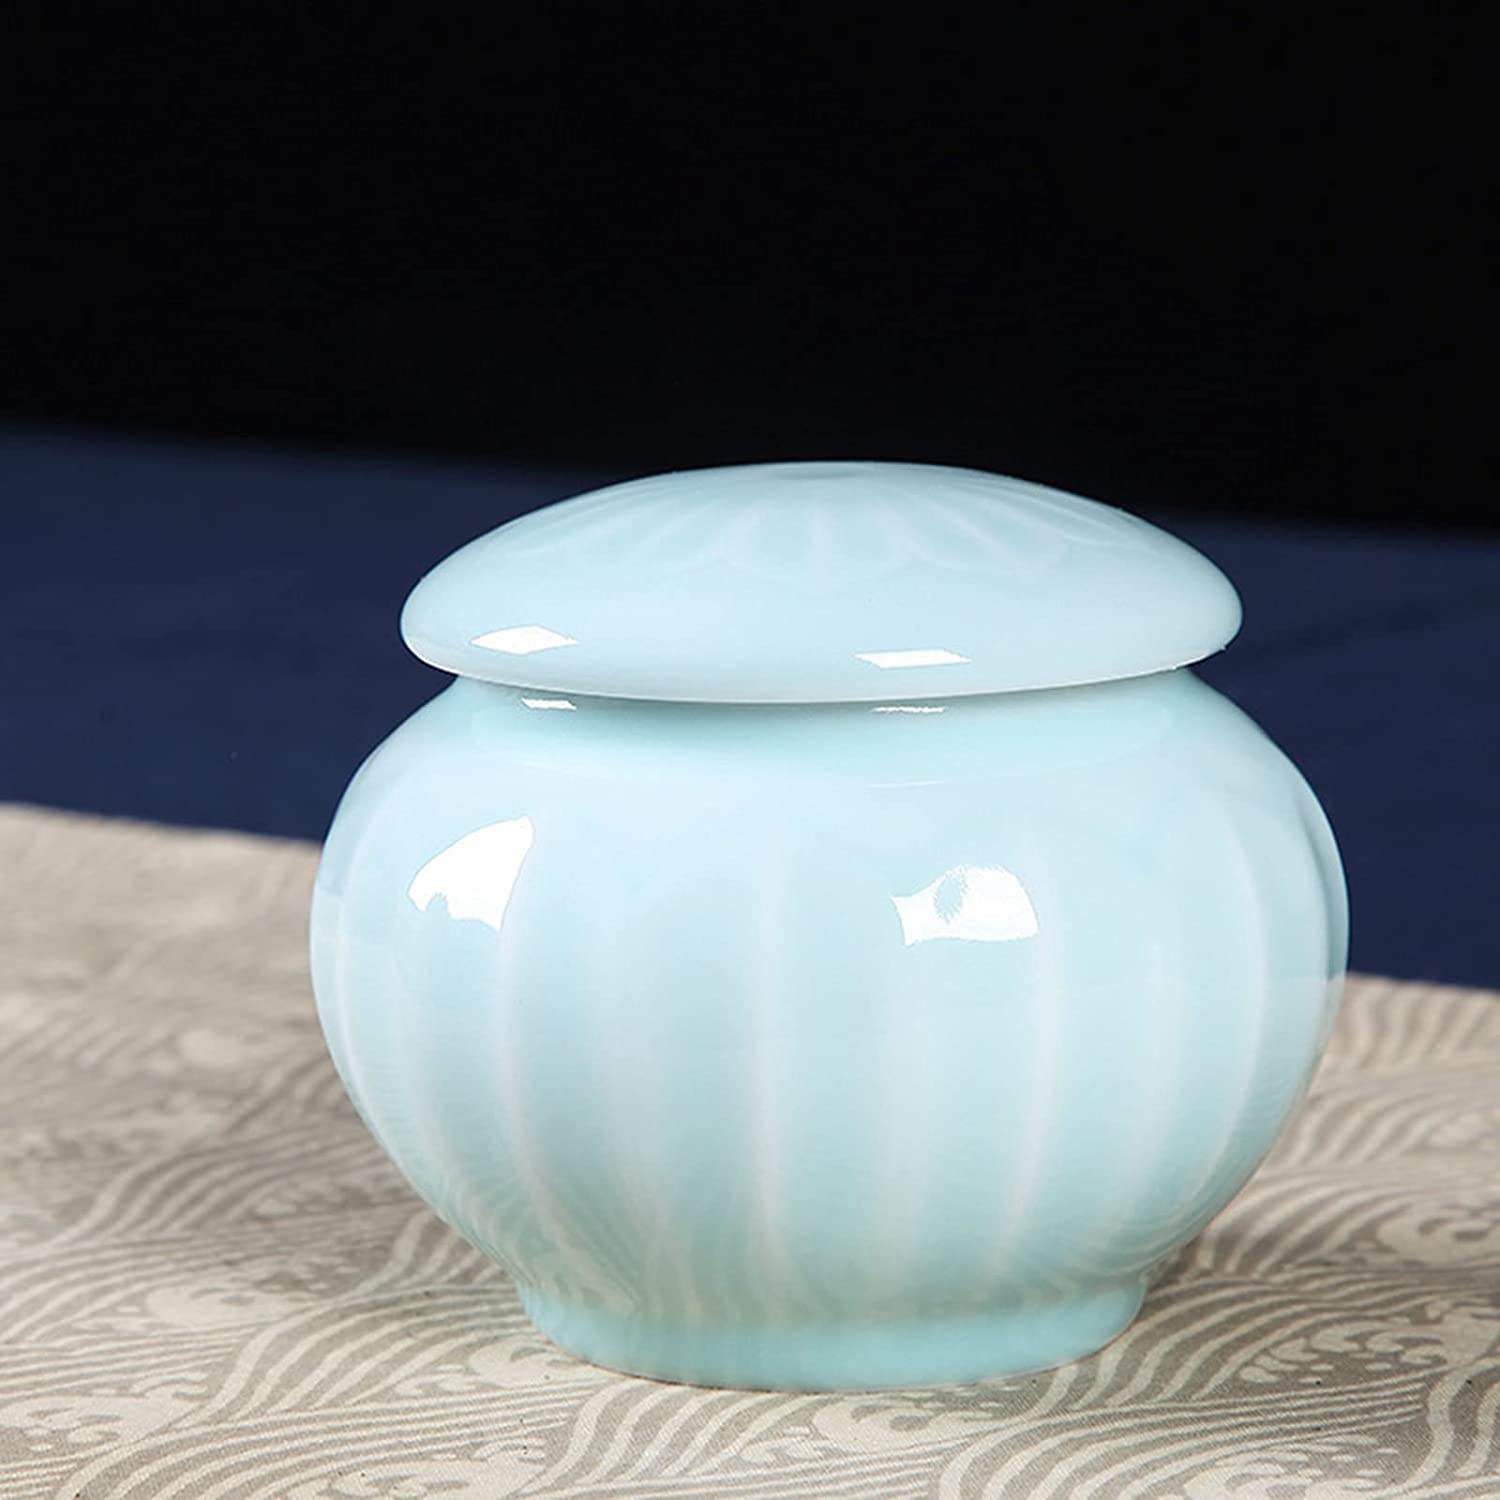 LEERIAN Mini Souvenirs Decorated Urns Cremation C Shipping included Small Max 43% OFF Ceramic